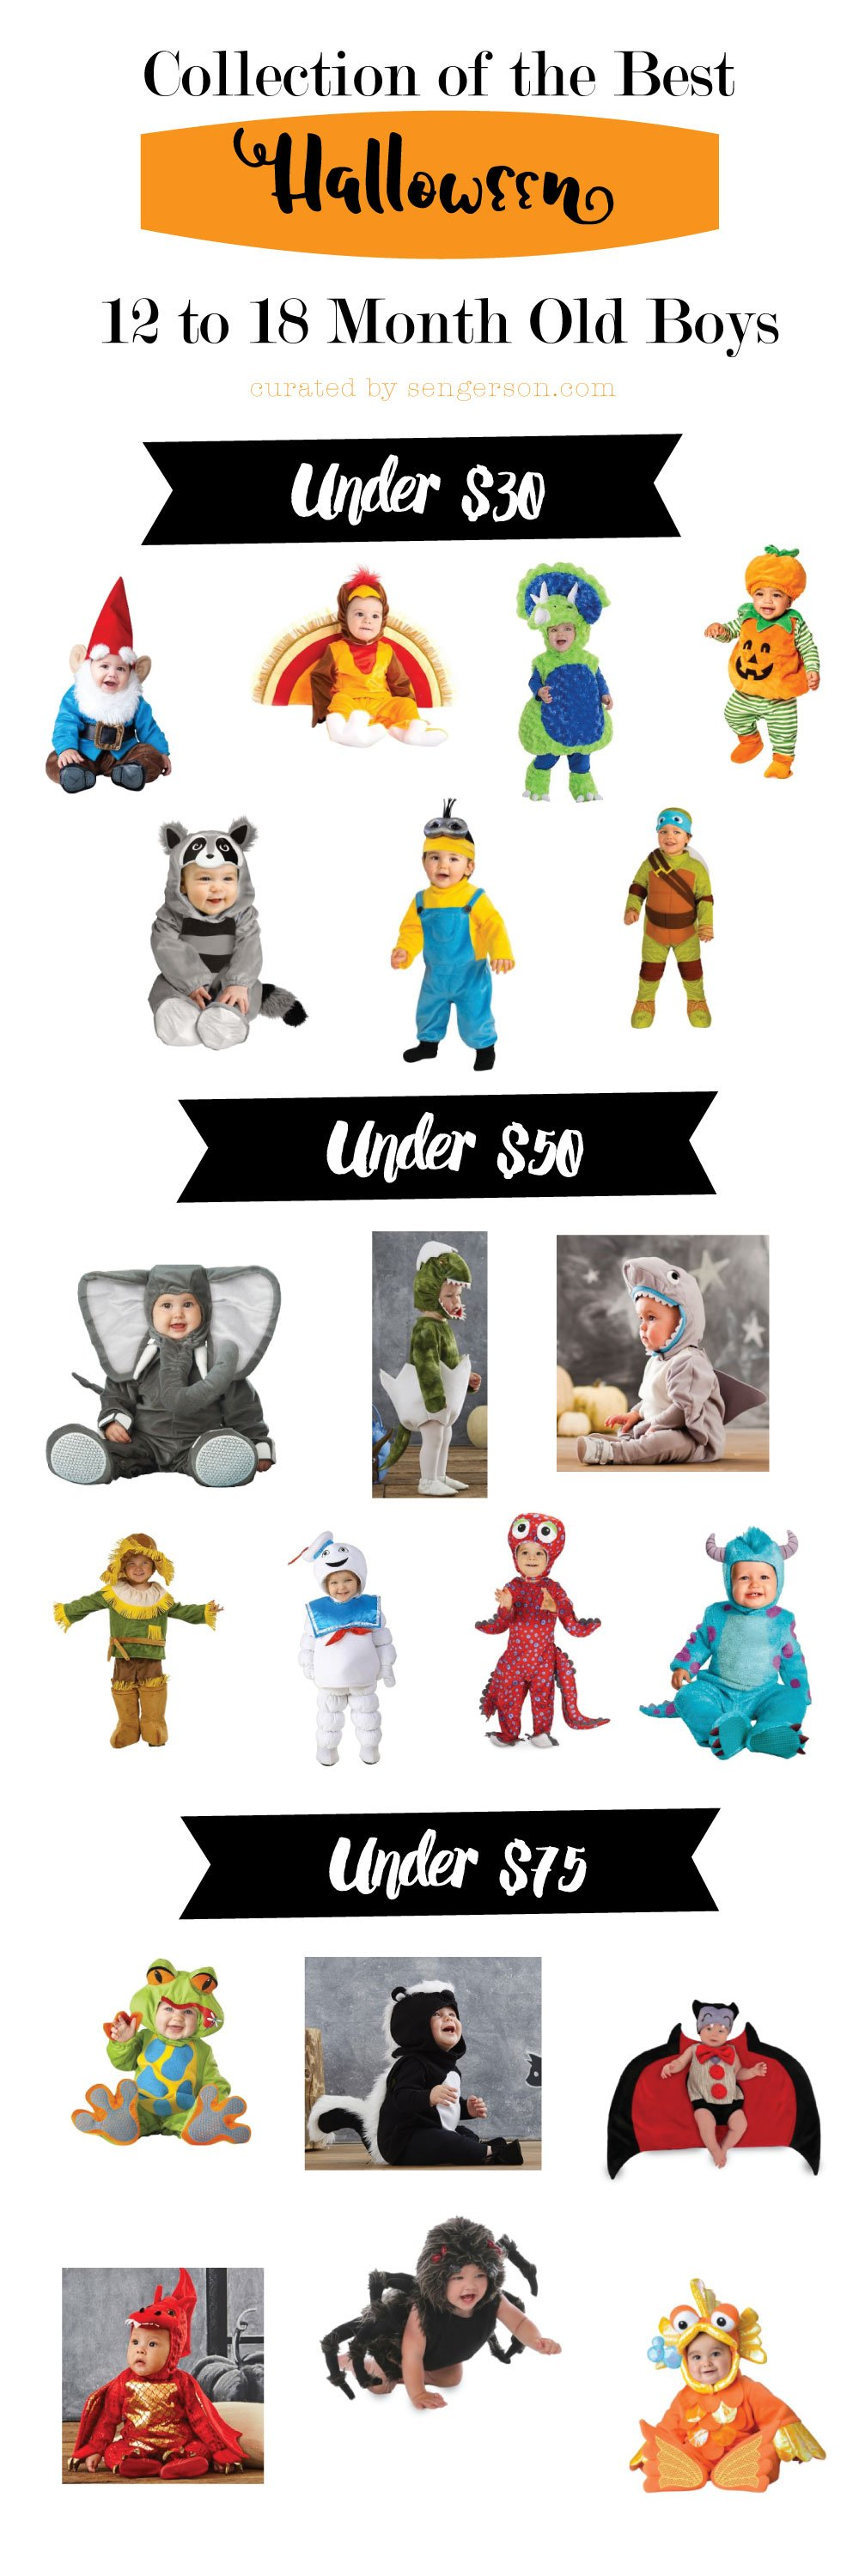 Ideas for Toddler Boy Halloween Costumes  sc 1 st  Sengerson & Toddler Boy Halloween Costumes